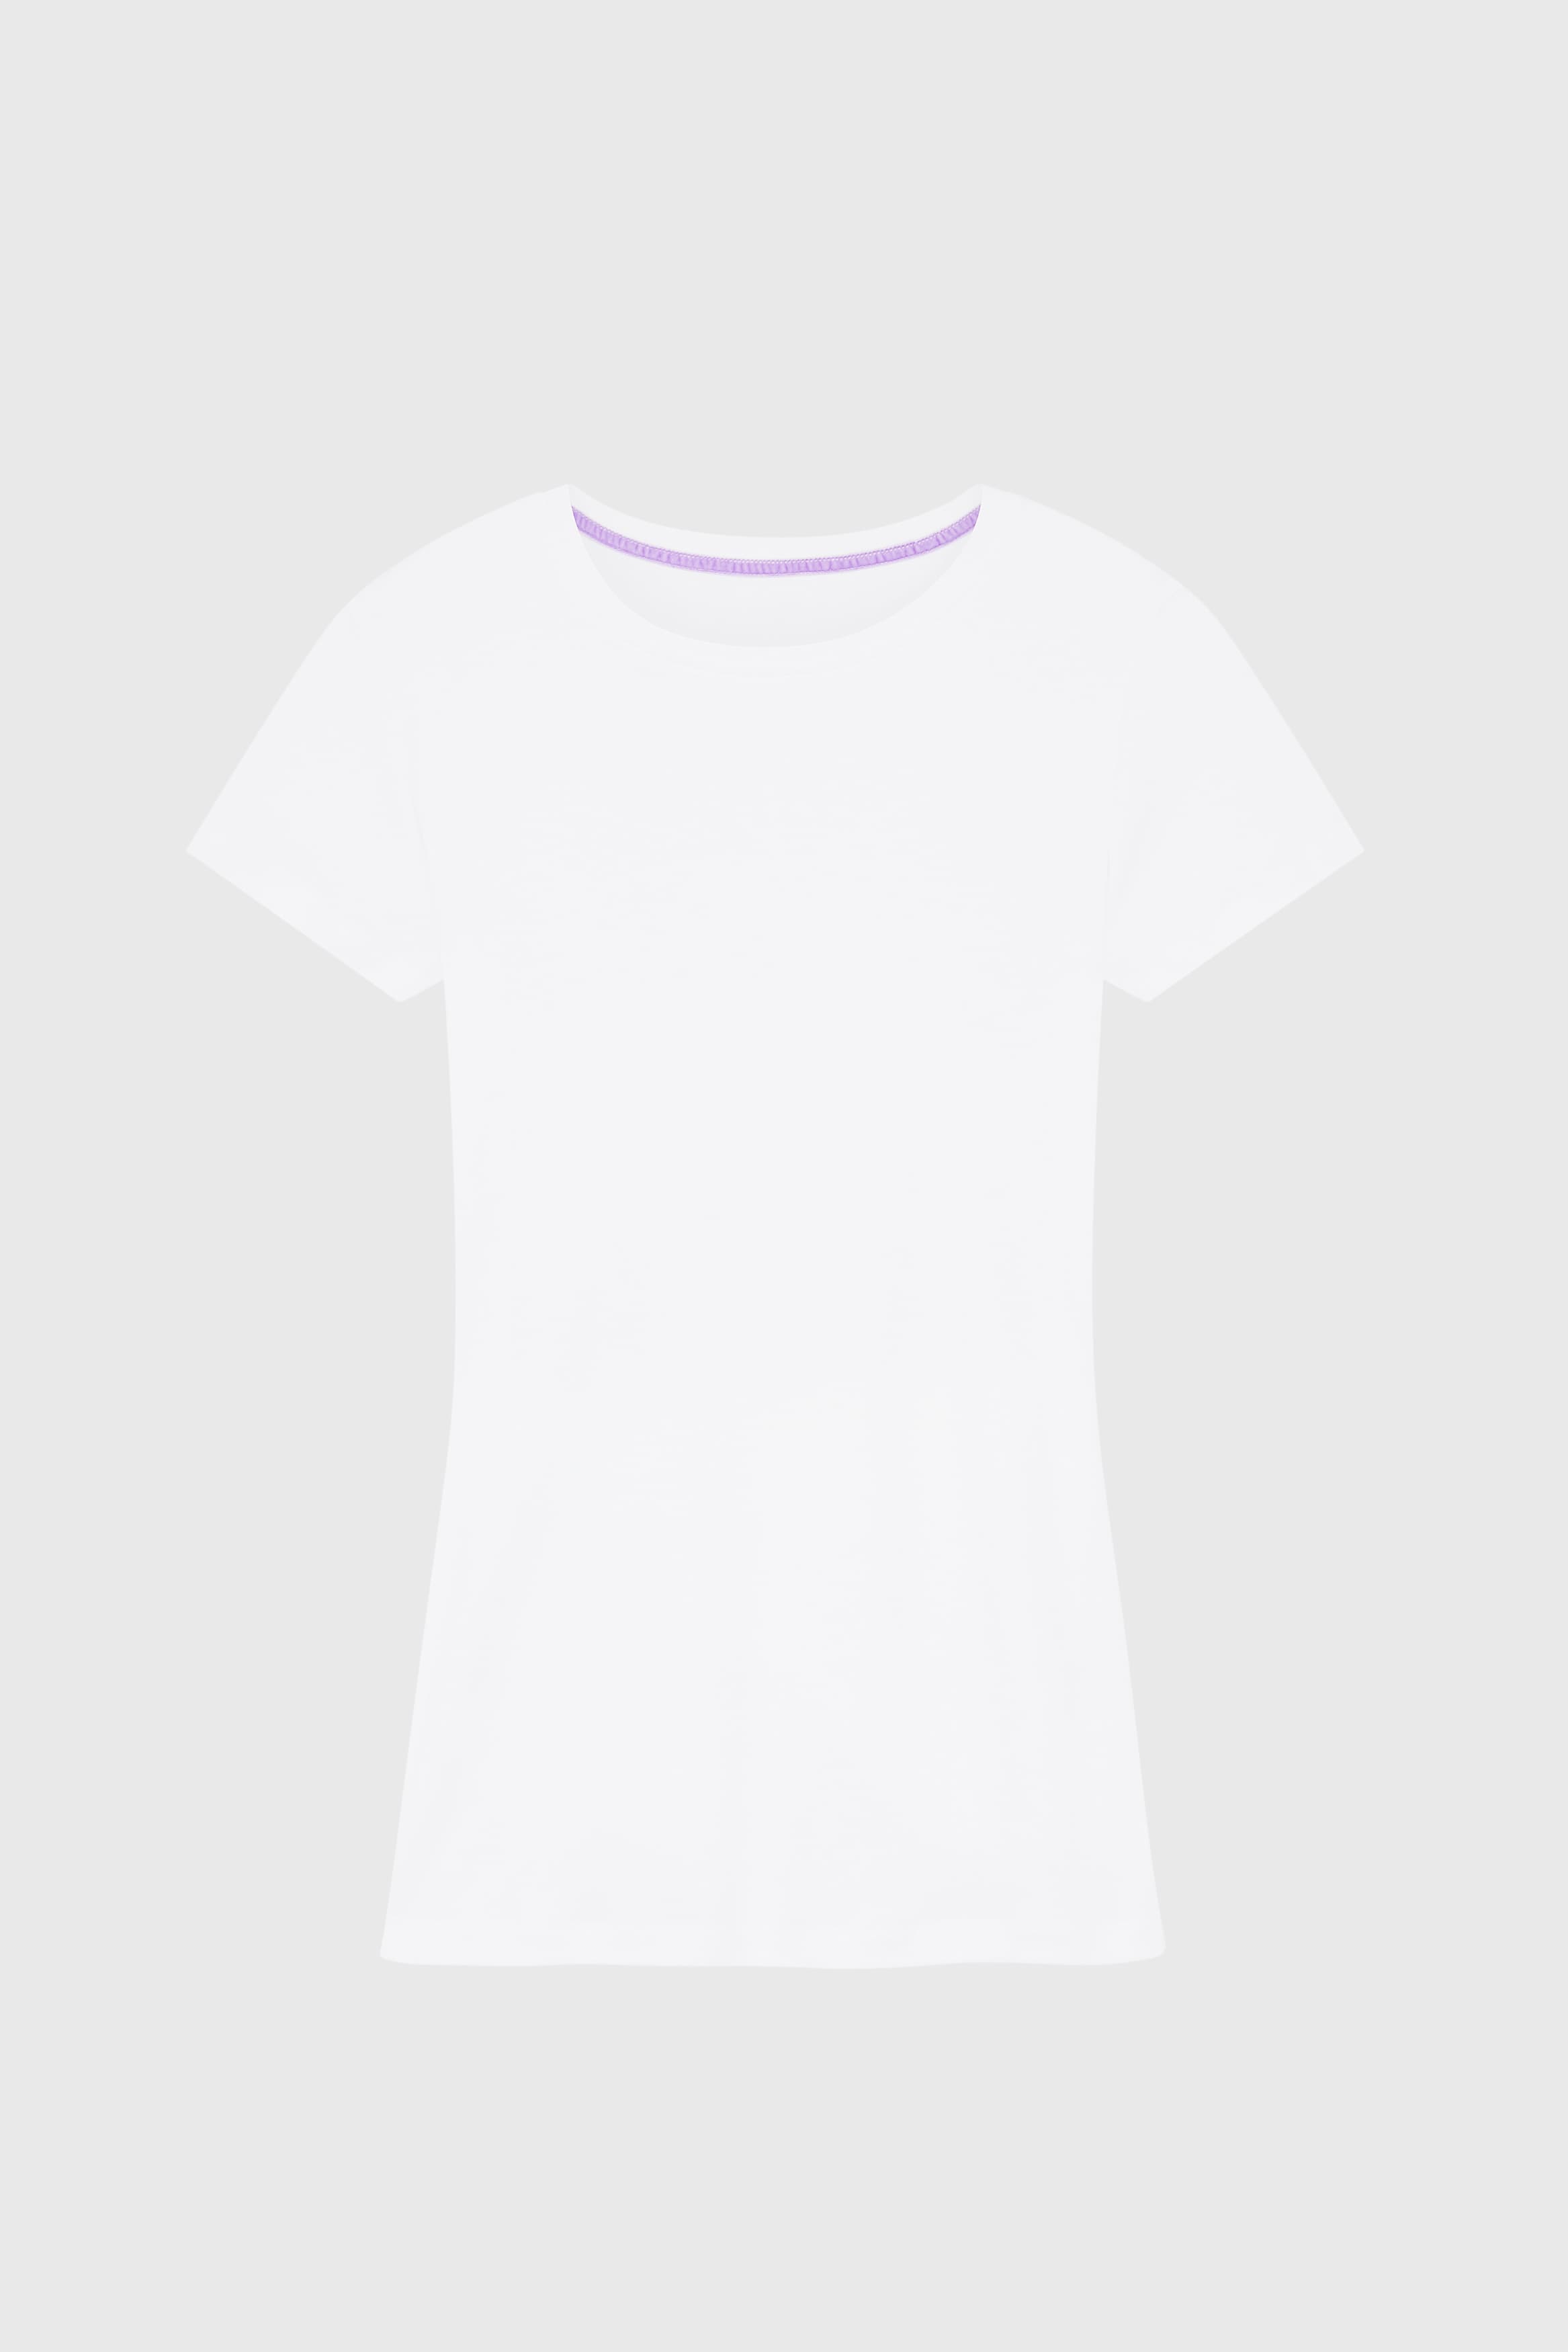 Short Sleeve Crew Neck Cotton Modal Blend T-shirt Short Sleeve T-shirt Lavender Hill Clothing